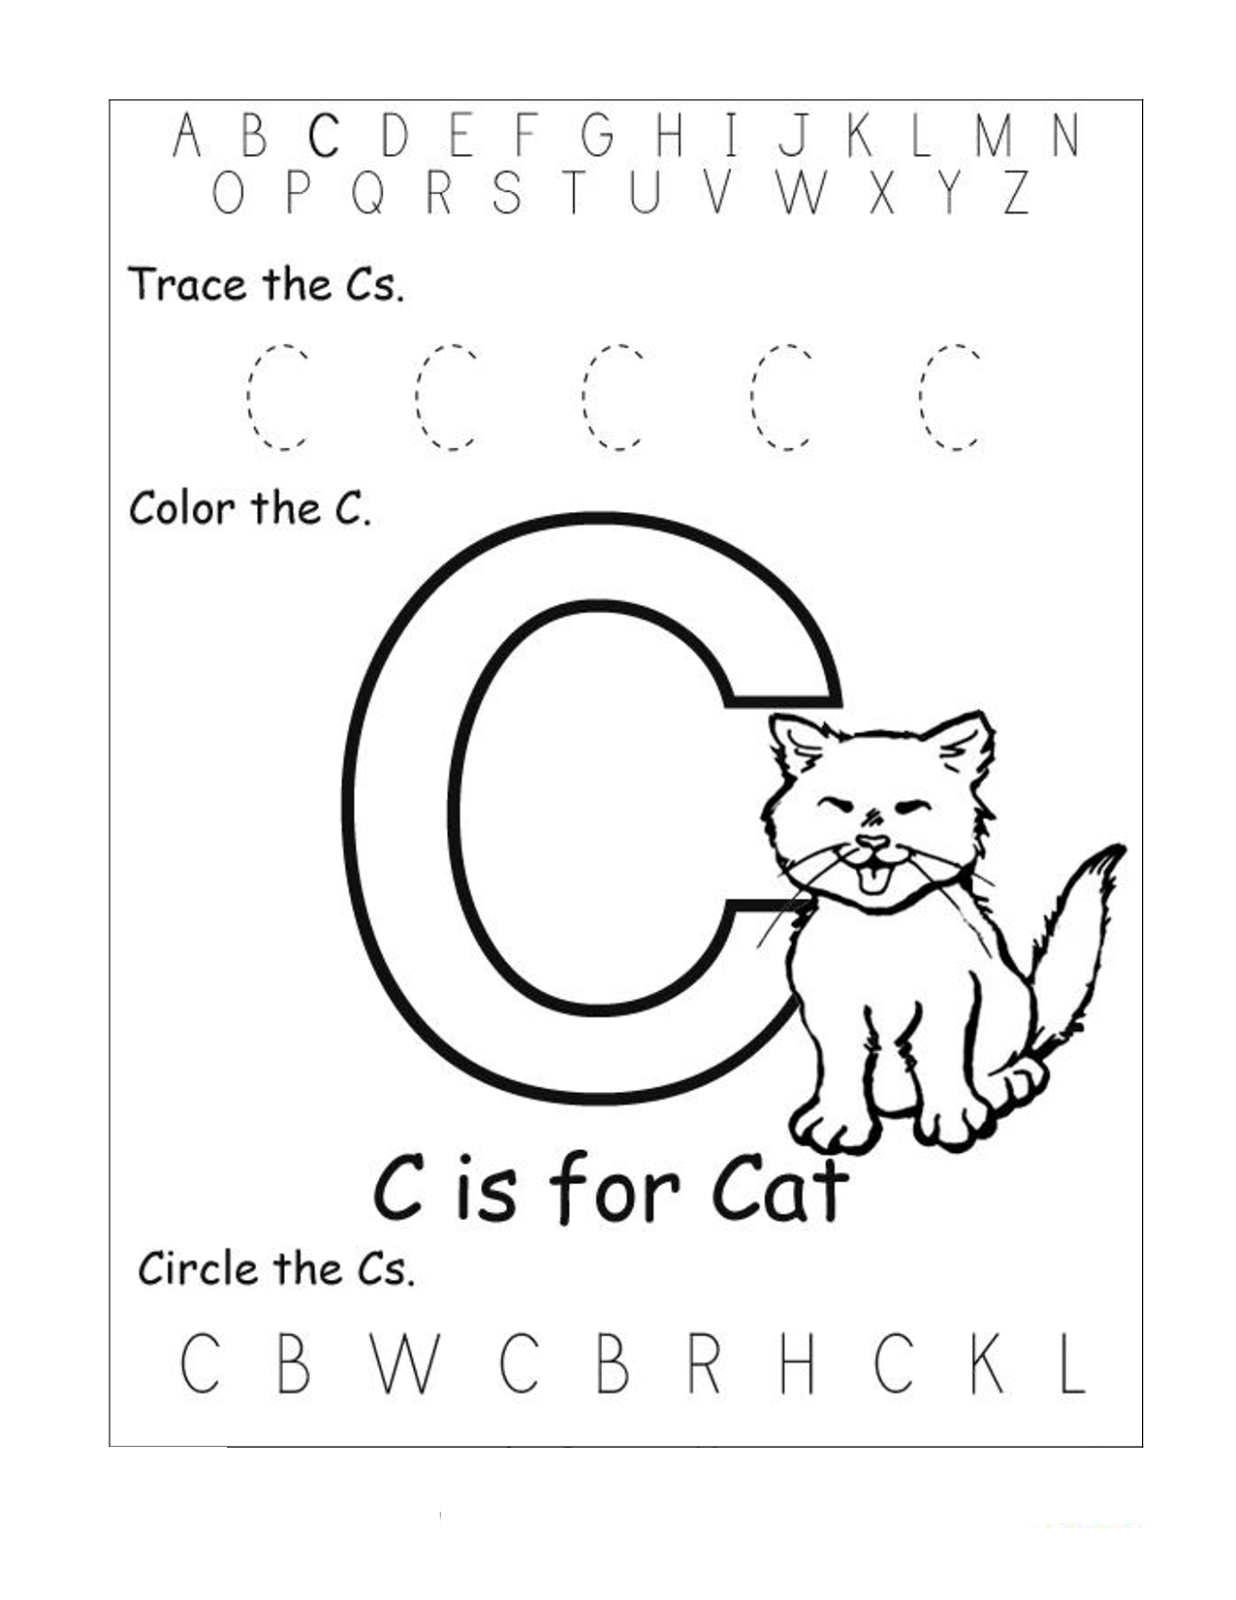 Worksheets Letter C Worksheets trace the letter c worksheets activity shelter cat